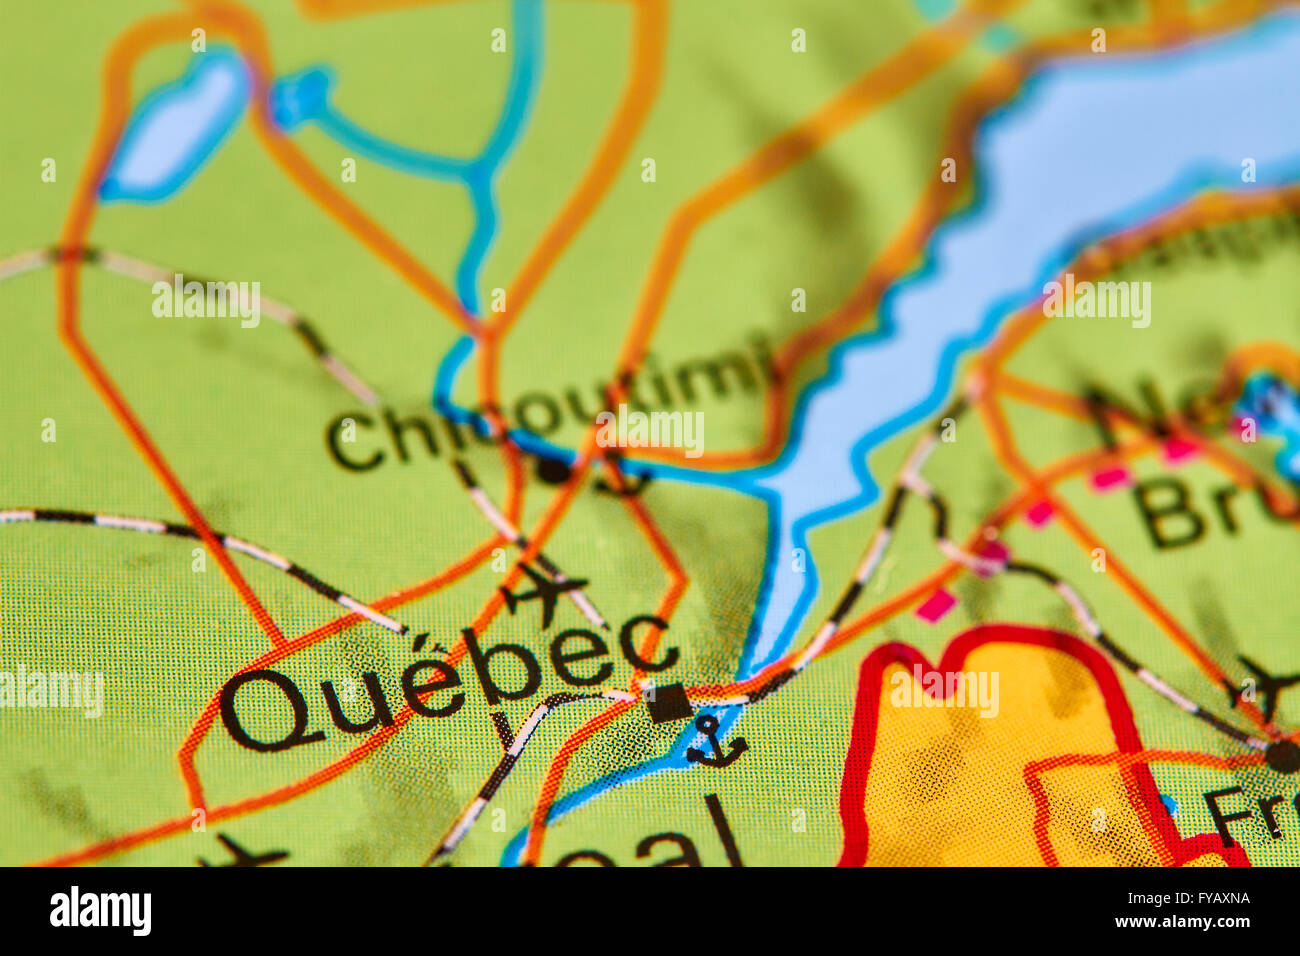 Quebec city in canada on the world map stock photo 102888054 alamy quebec city in canada on the world map gumiabroncs Images